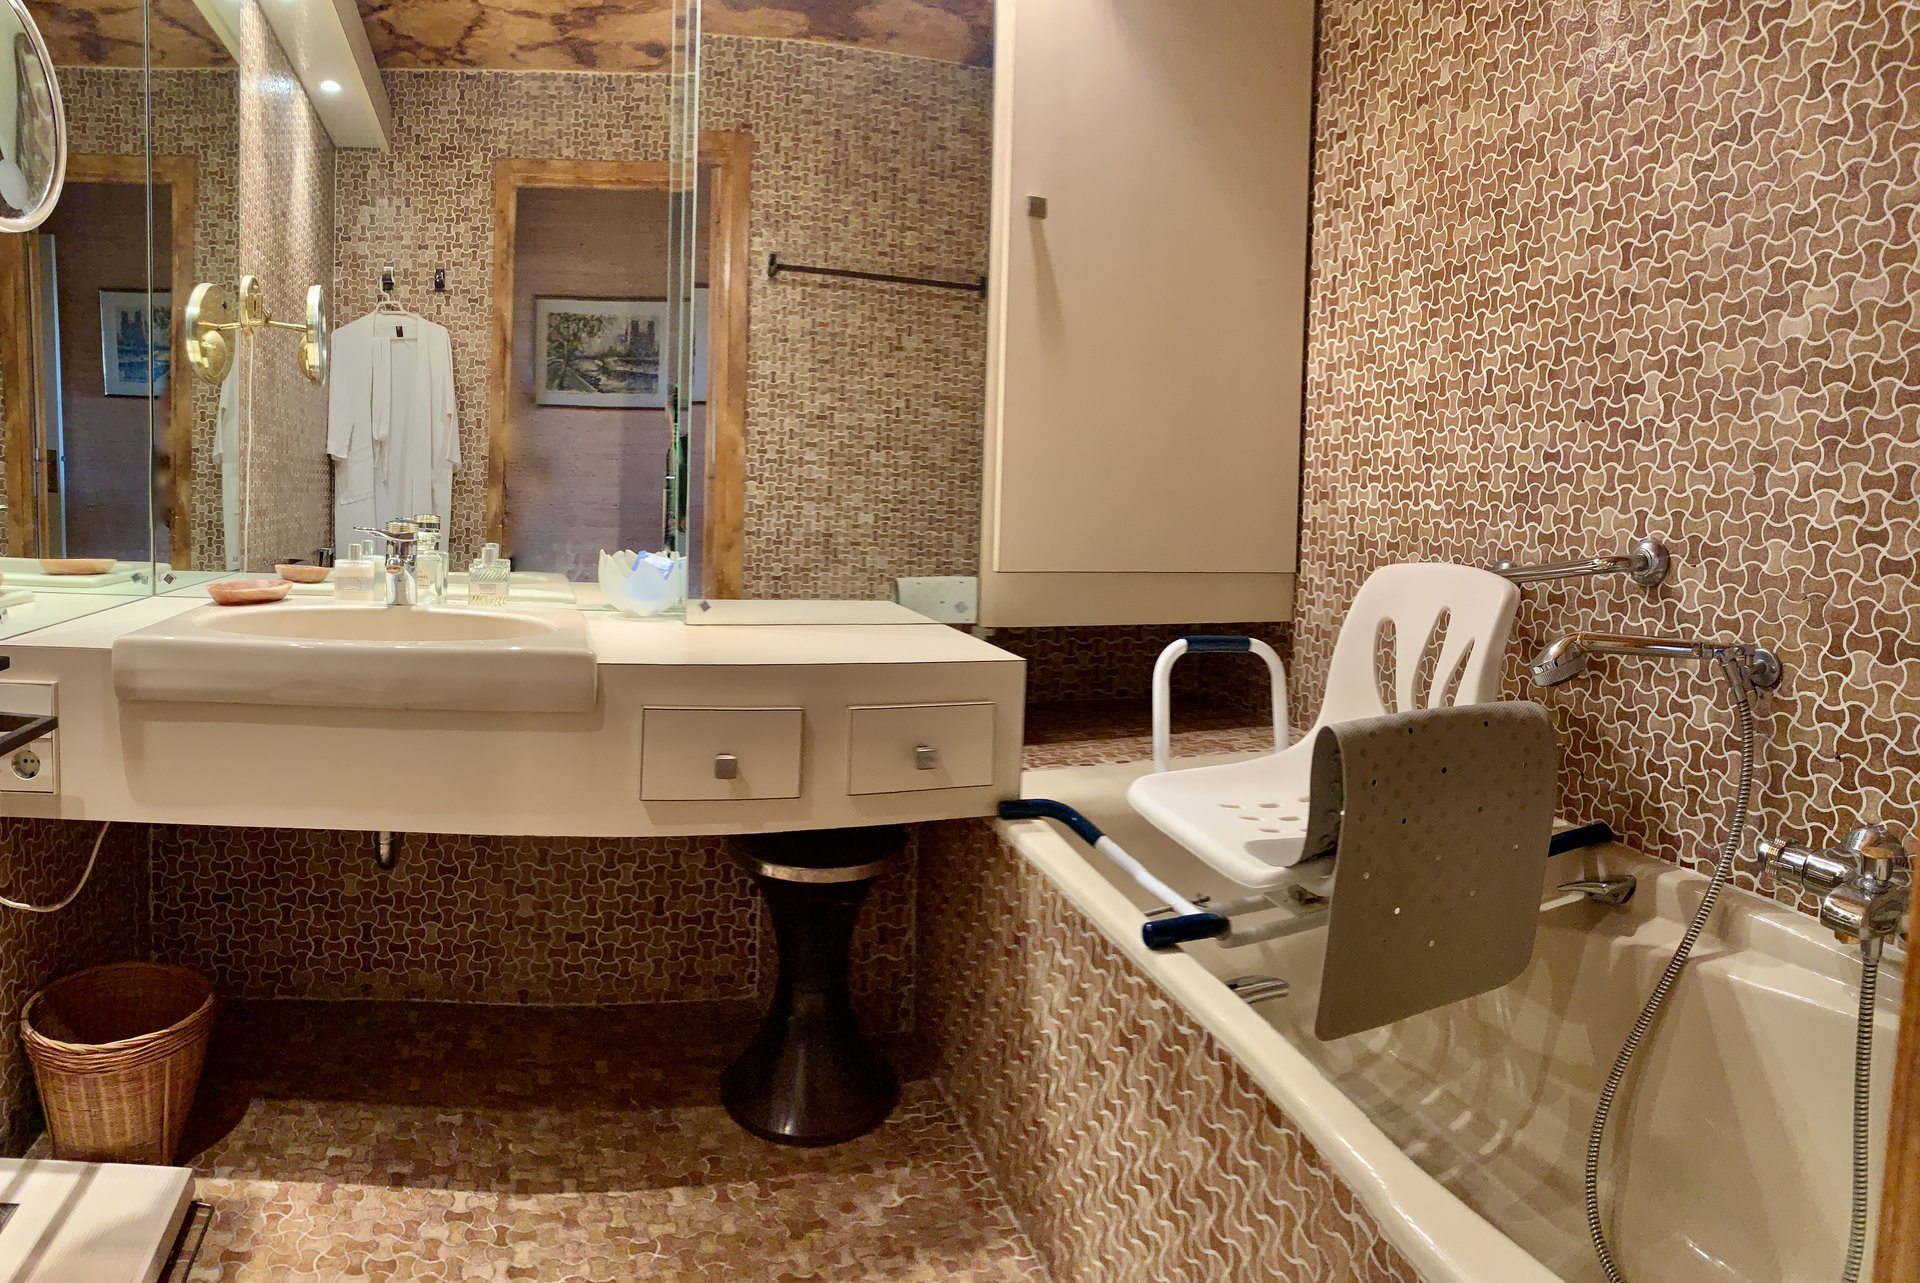 large bathroom, mirror and storages